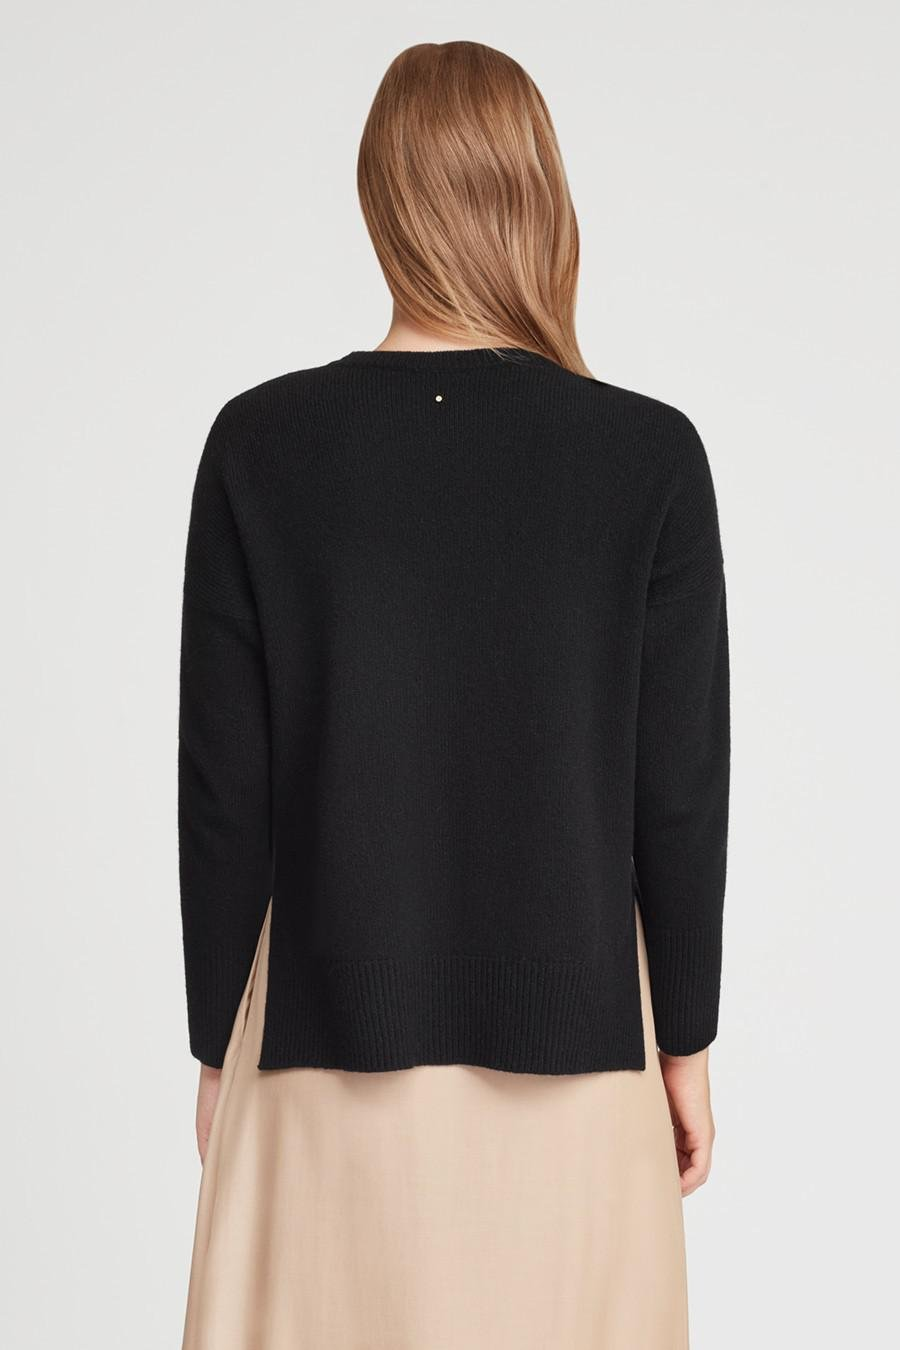 Women's Recycled Crewneck Sweater in Black   Size: 3